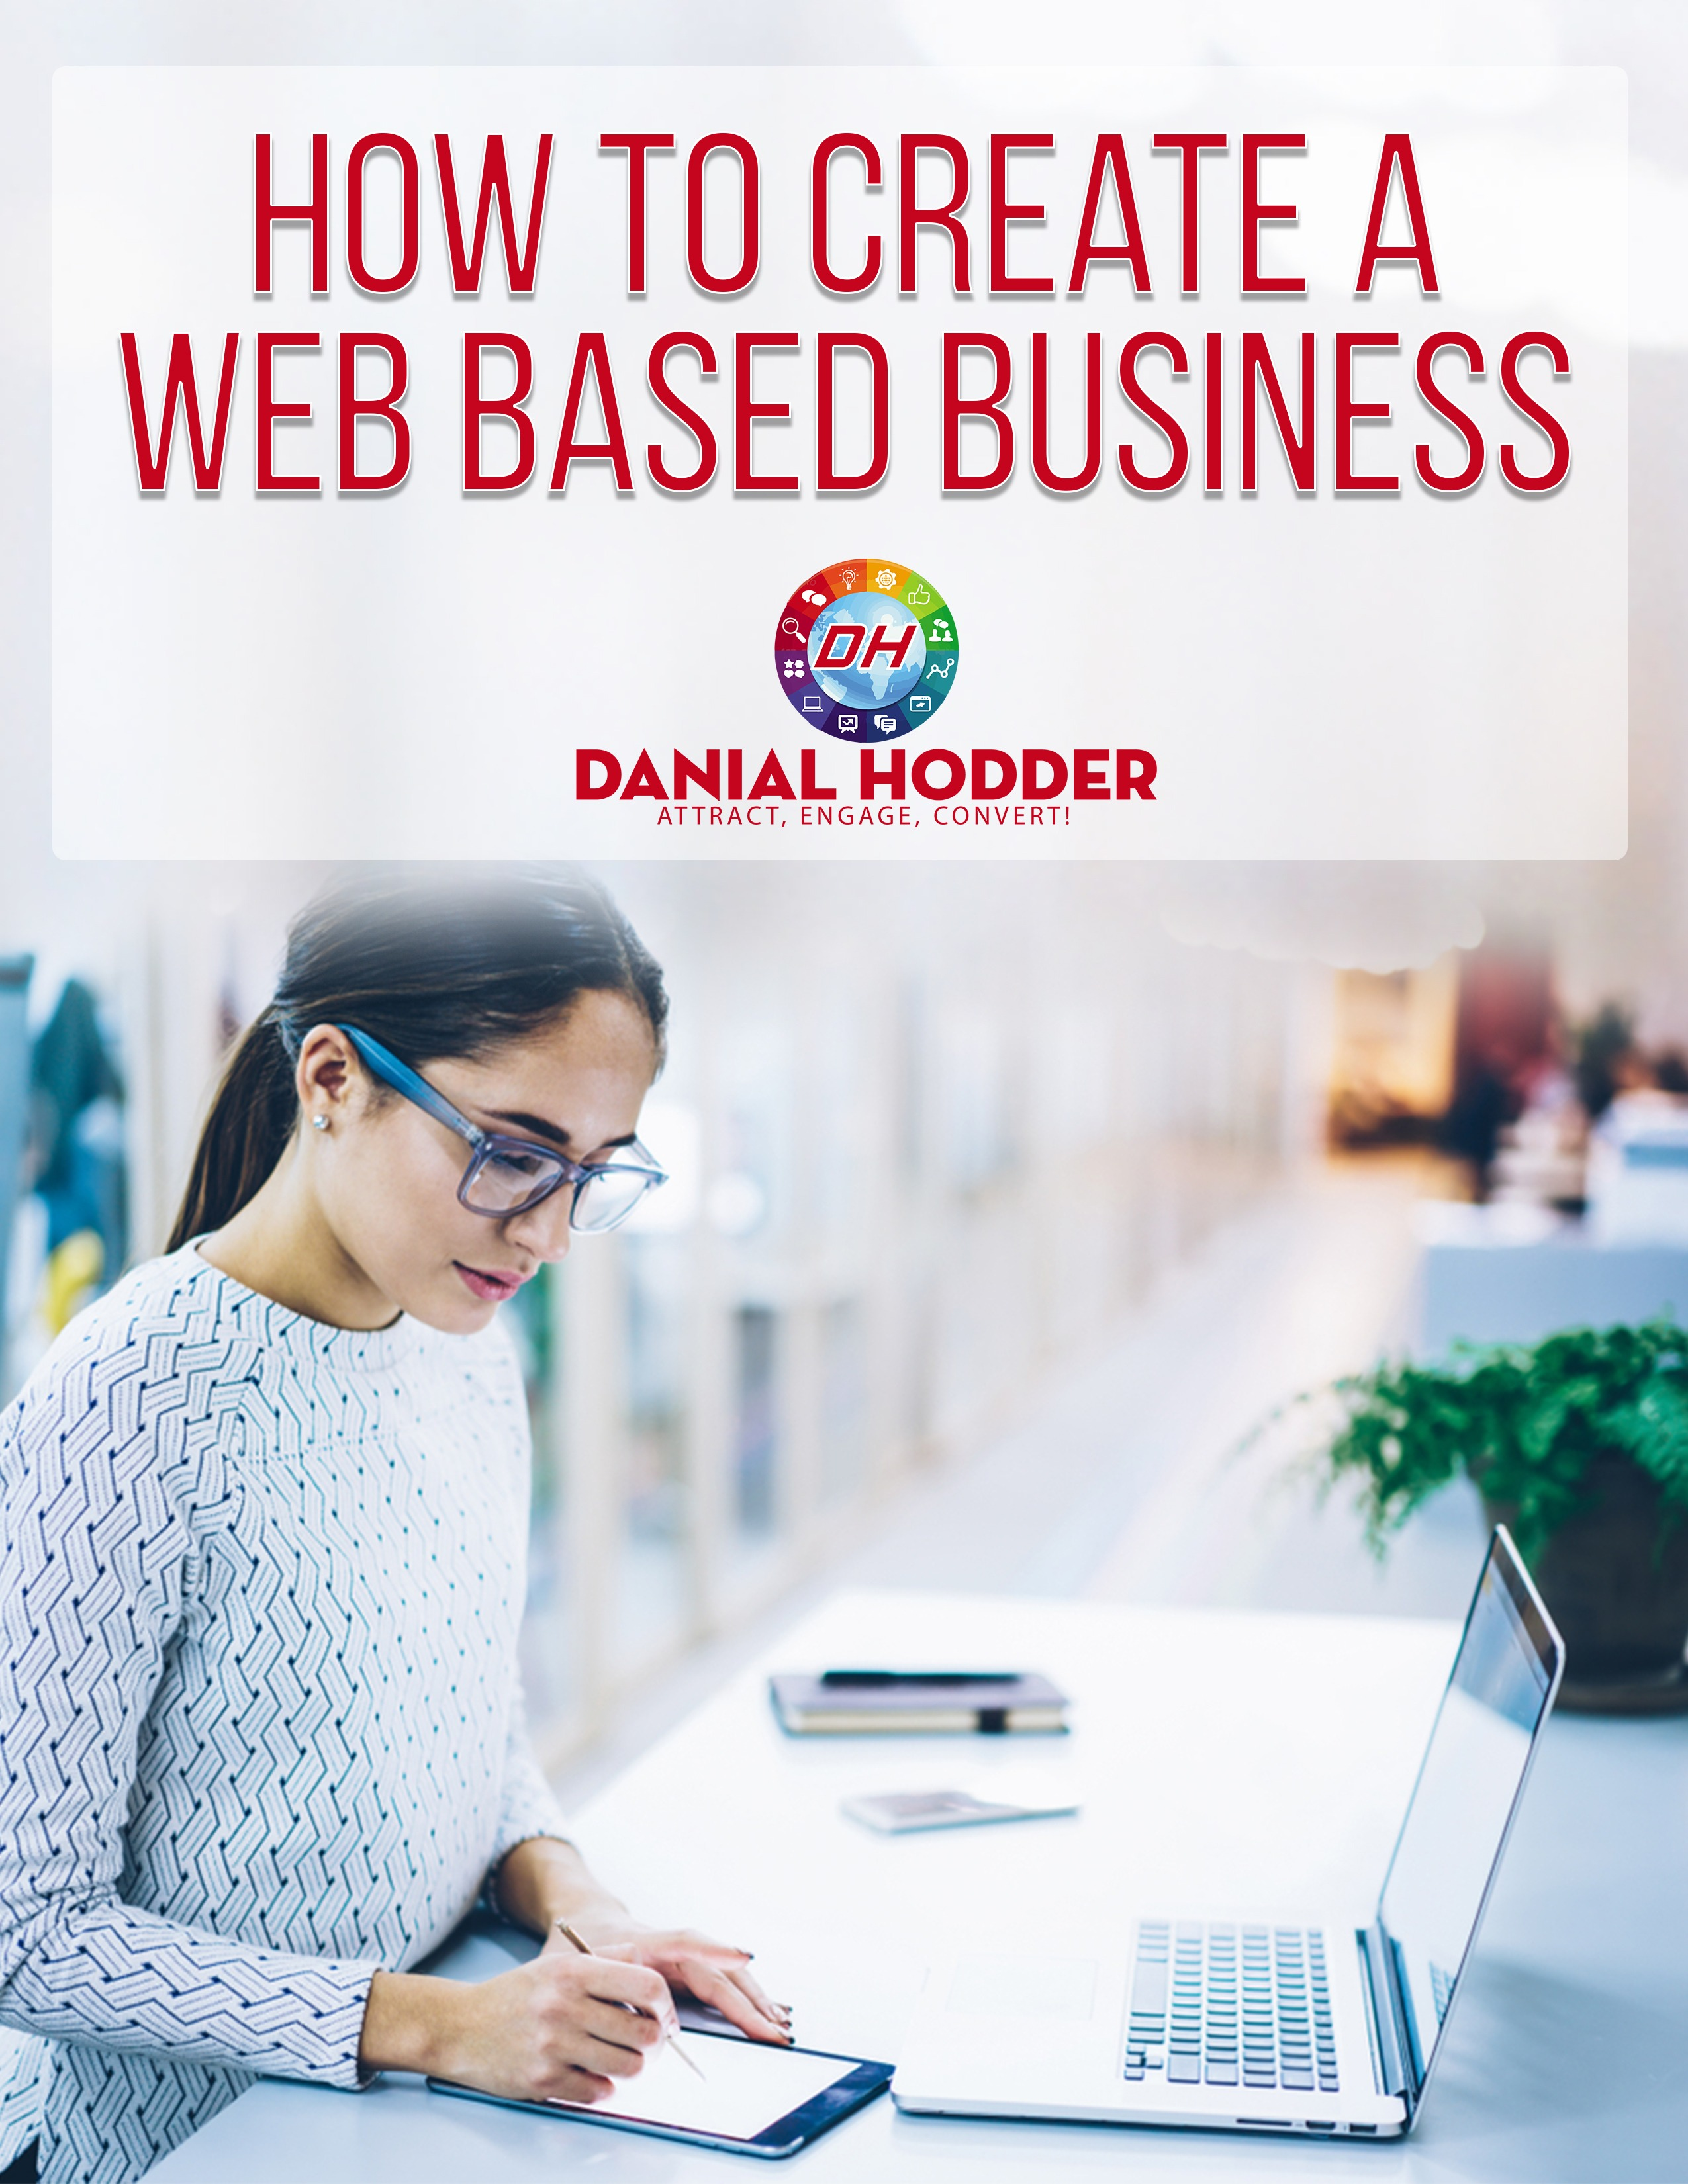 How to create a web based business